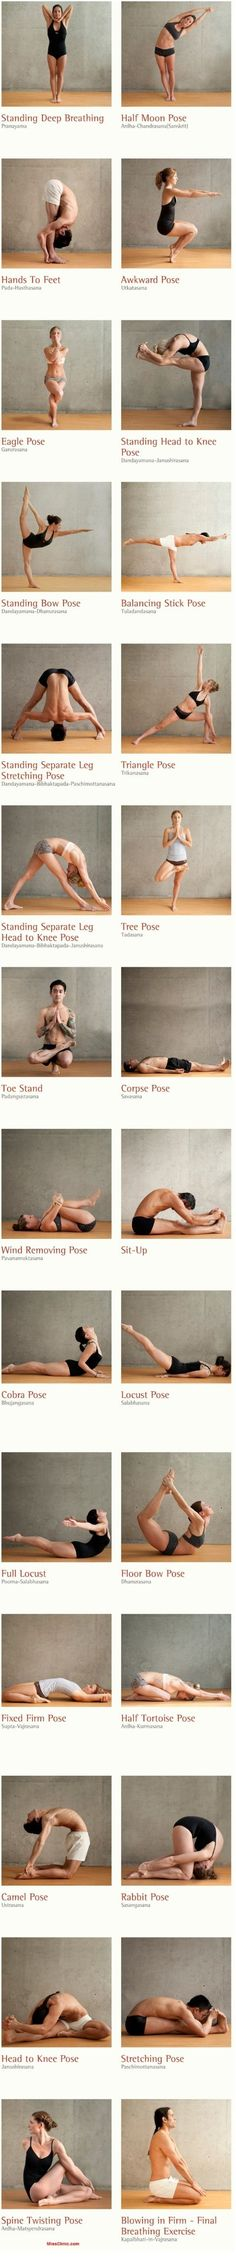 26 Bikrim Yoga poses - modified a few poses to do at home.